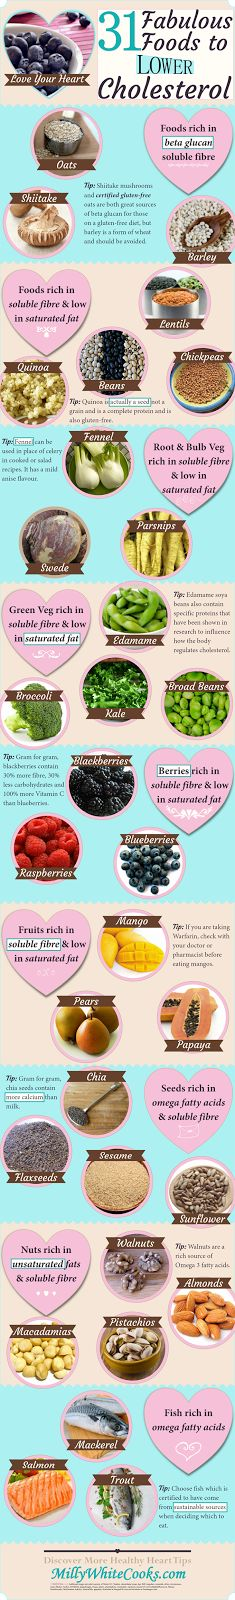 31 Fabulous Foods To  Lower Cholesterol (Infographic)